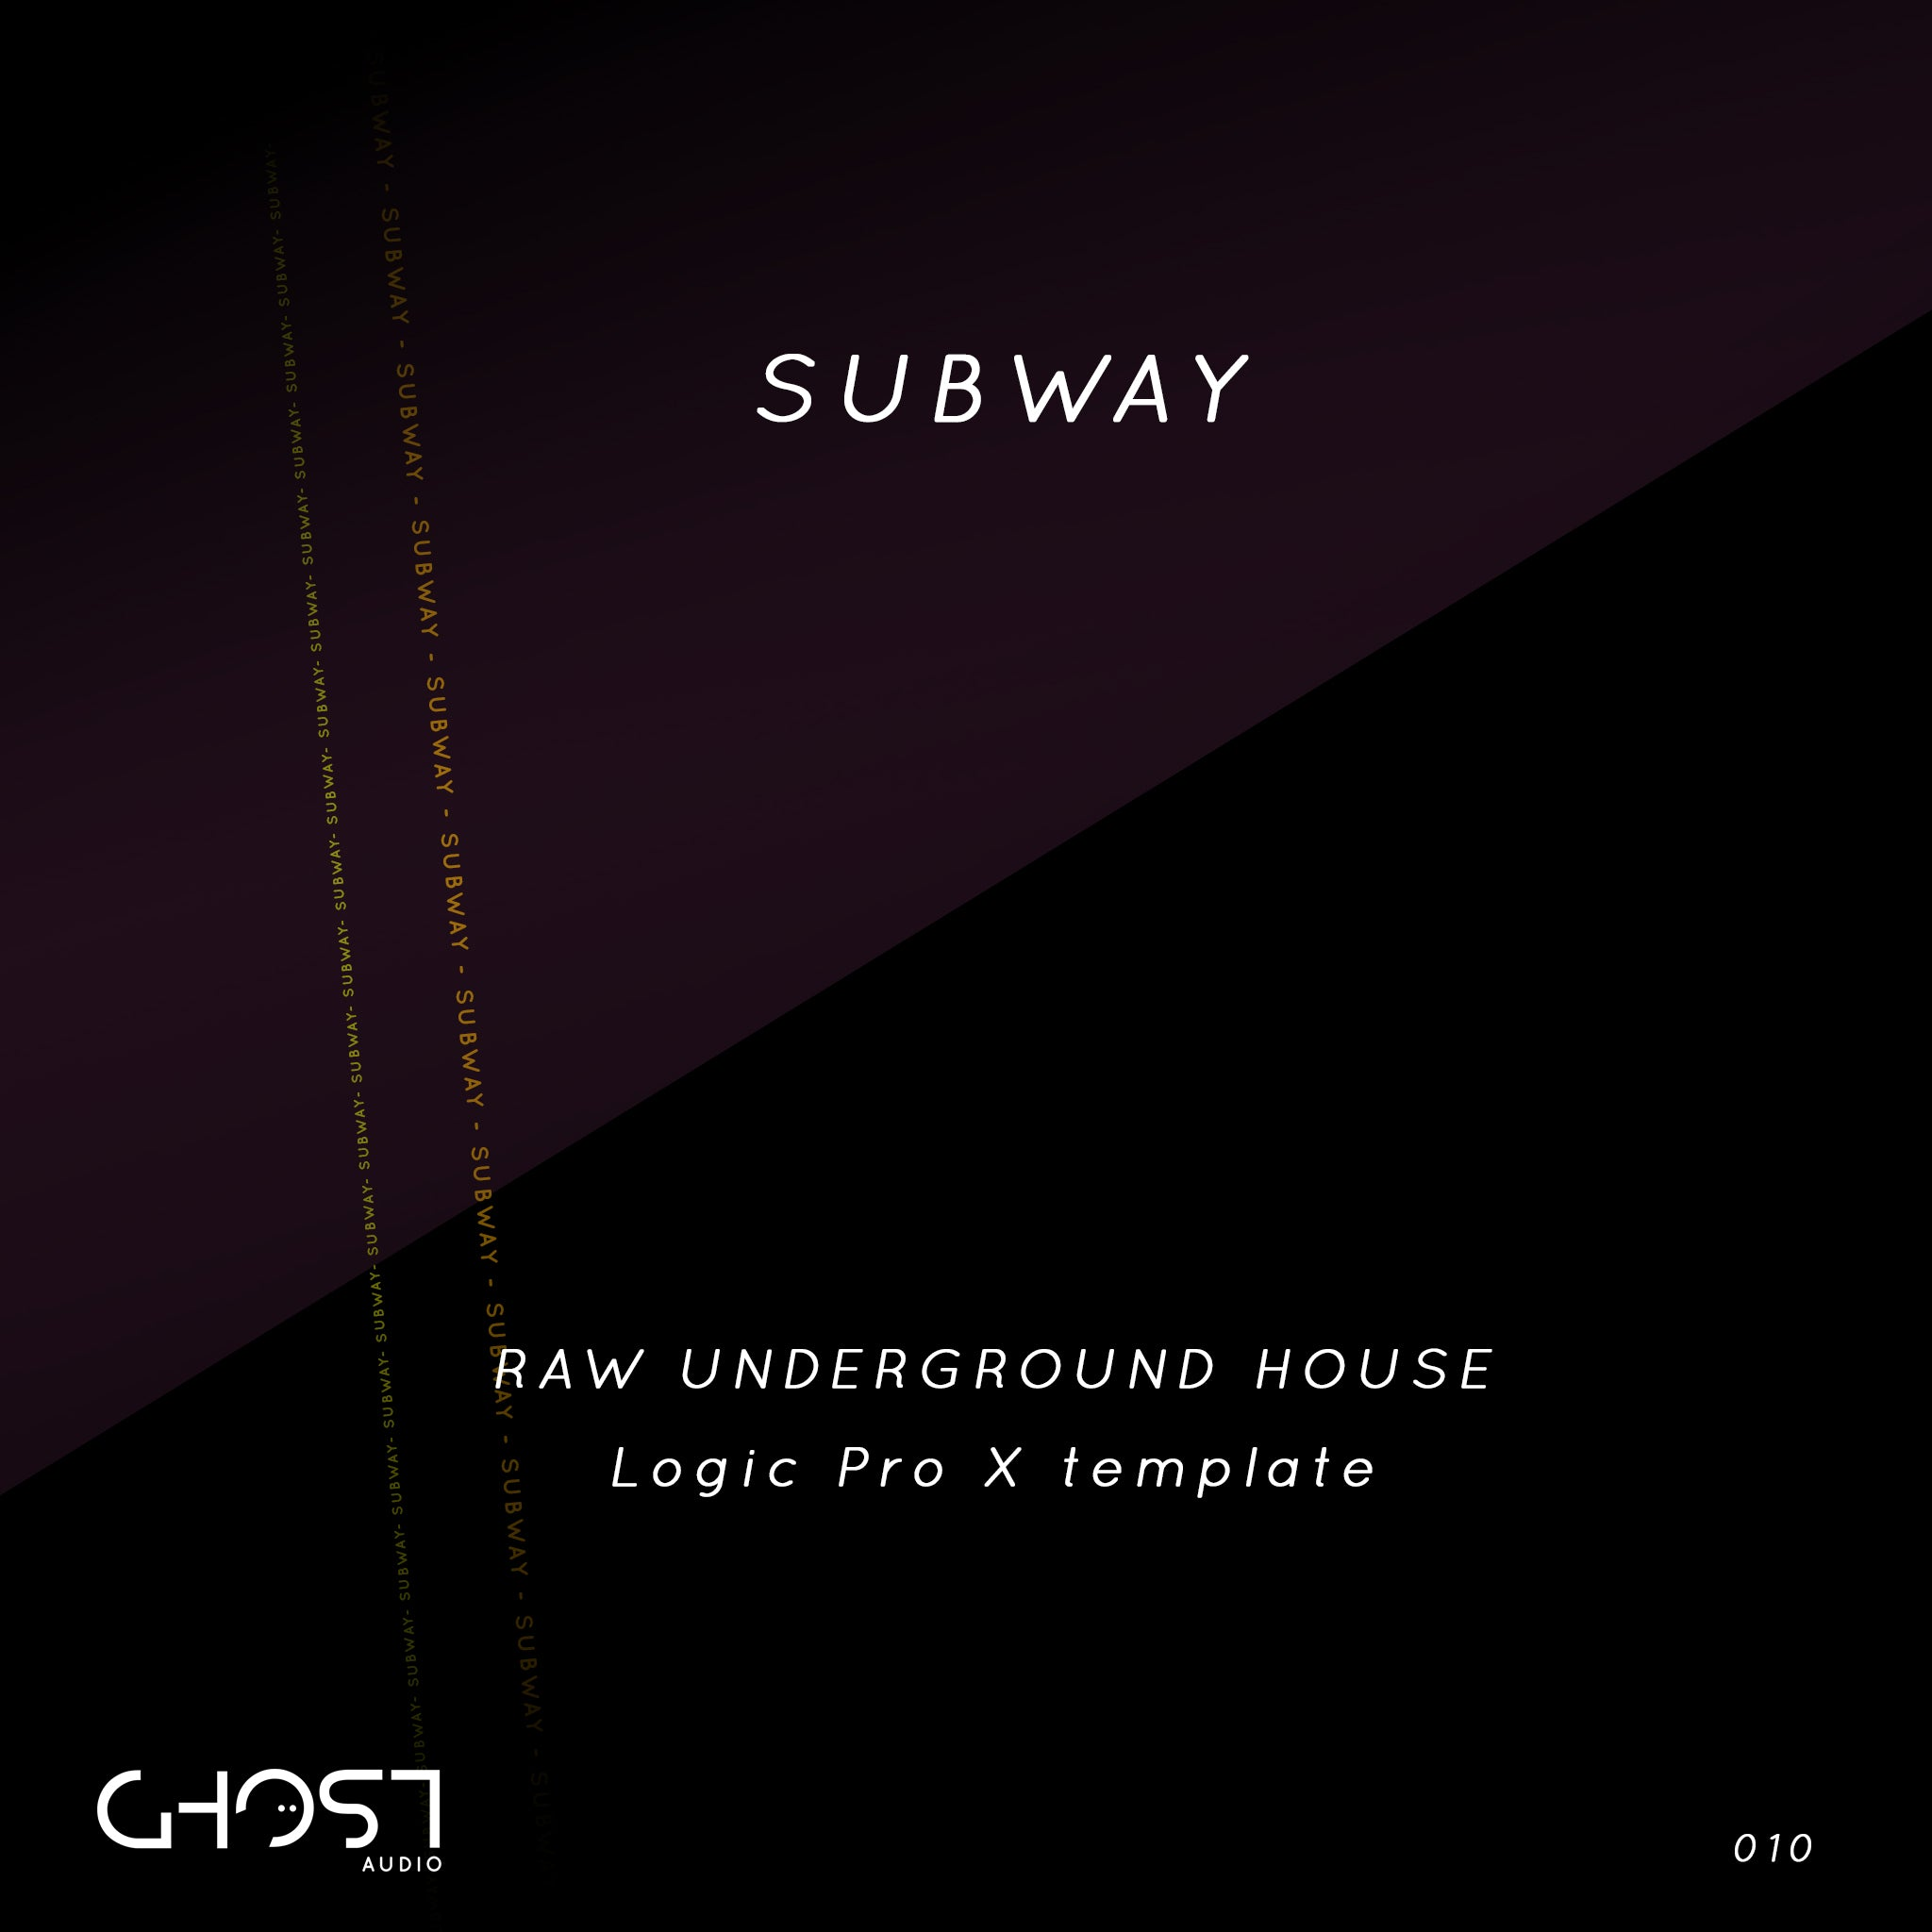 SUBWAY - RAW UNDERGROUND HOUSE ( LOGIC PRO X TEMPLATE )